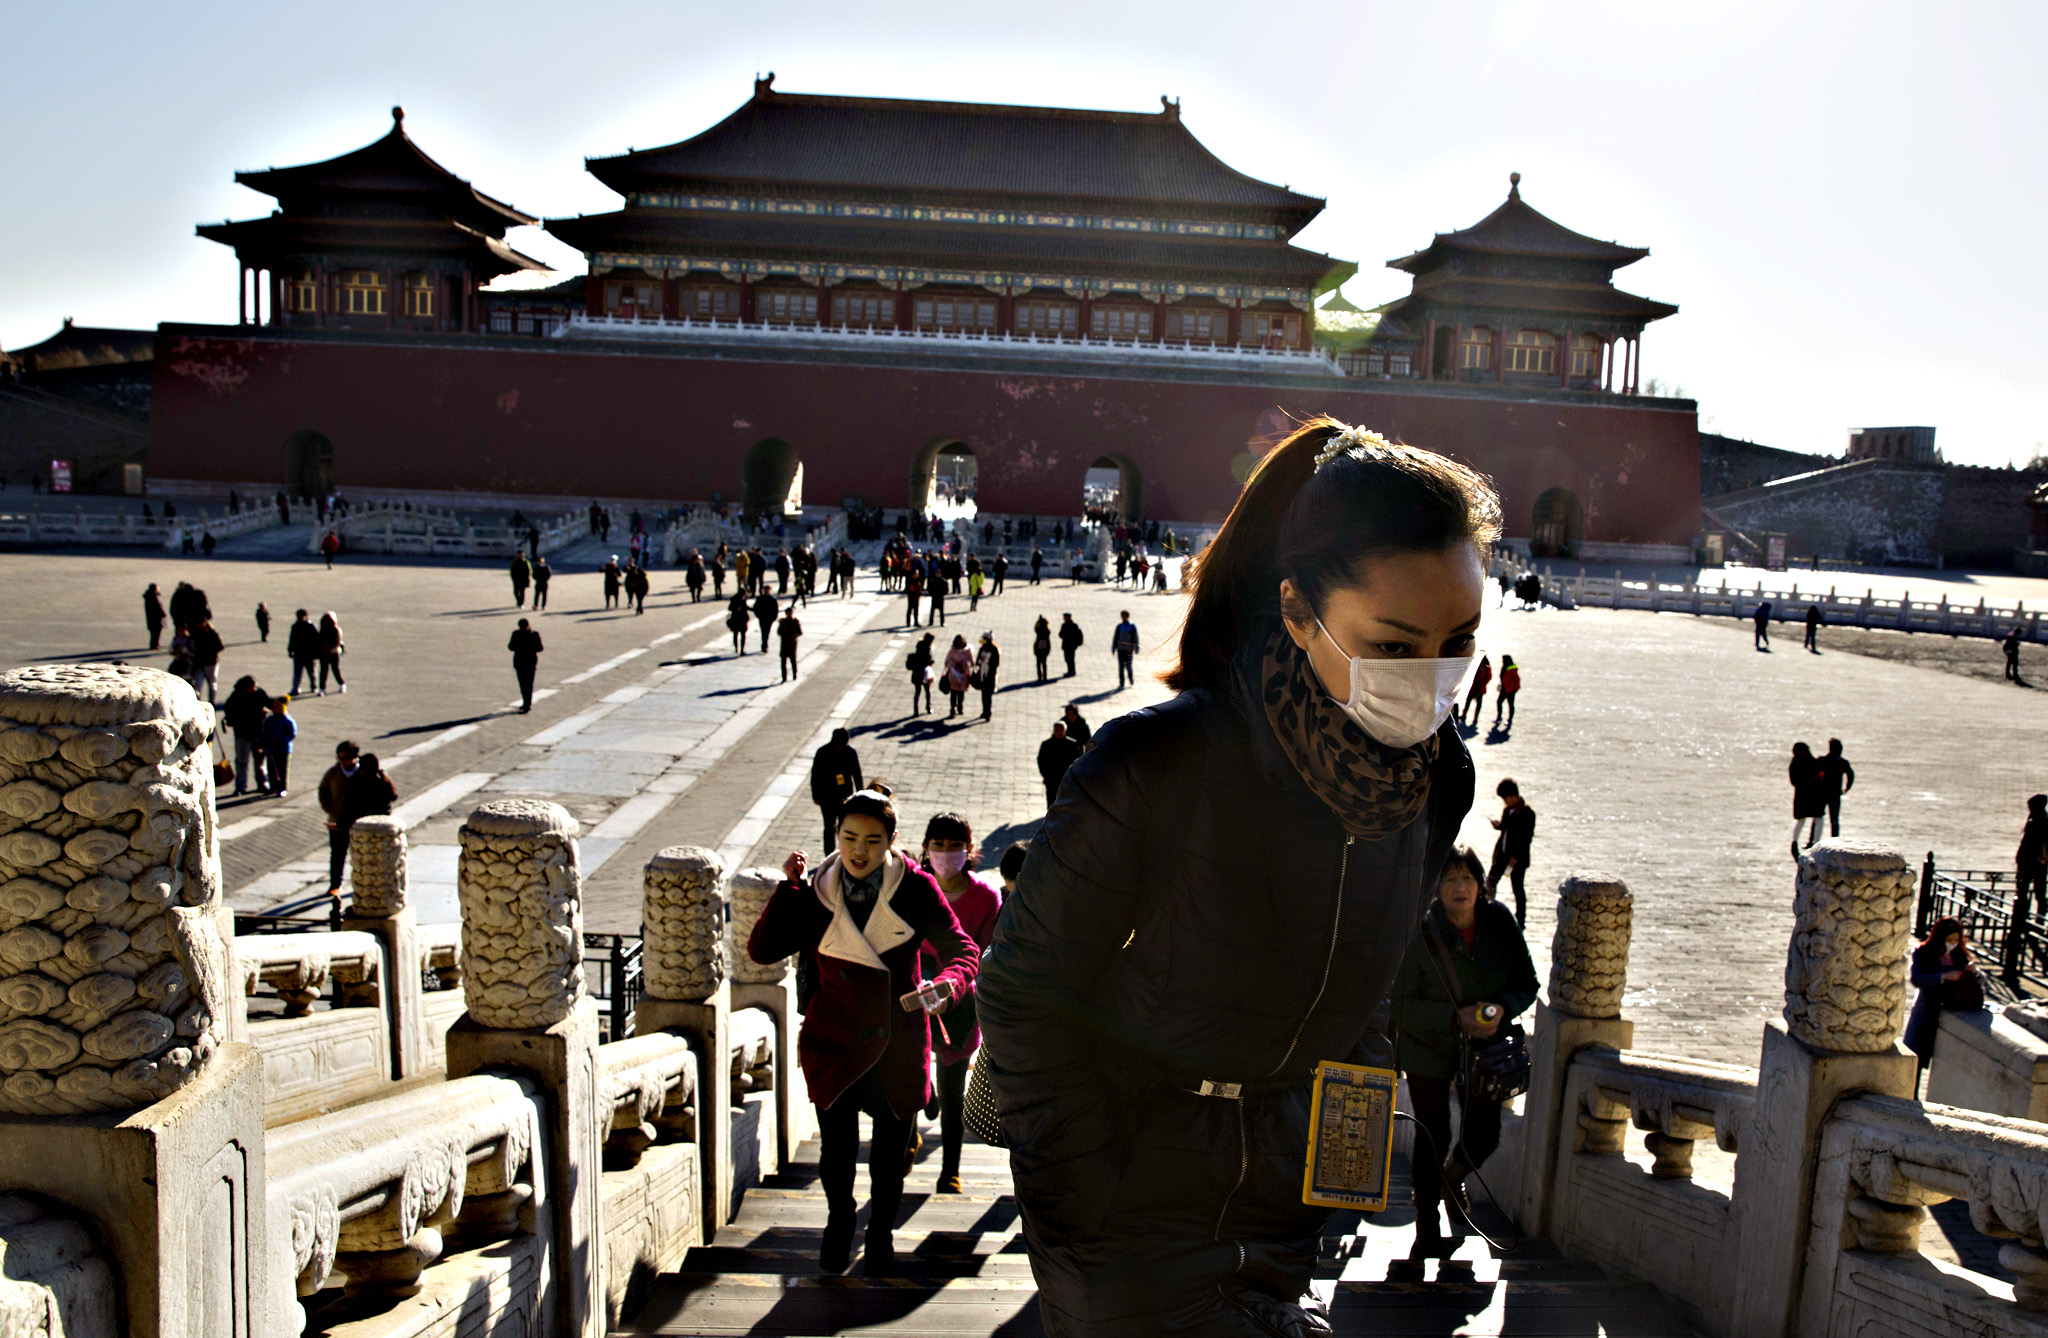 A woman wears a mask as she visits the Forbidden City during a sunny day in Beijing Friday, Dec. 18, 2015. Residents in the Chinese capital are preparing for its second smog red alert as a wave of smog is forecasted to settle over the city from Saturday to Tuesday.